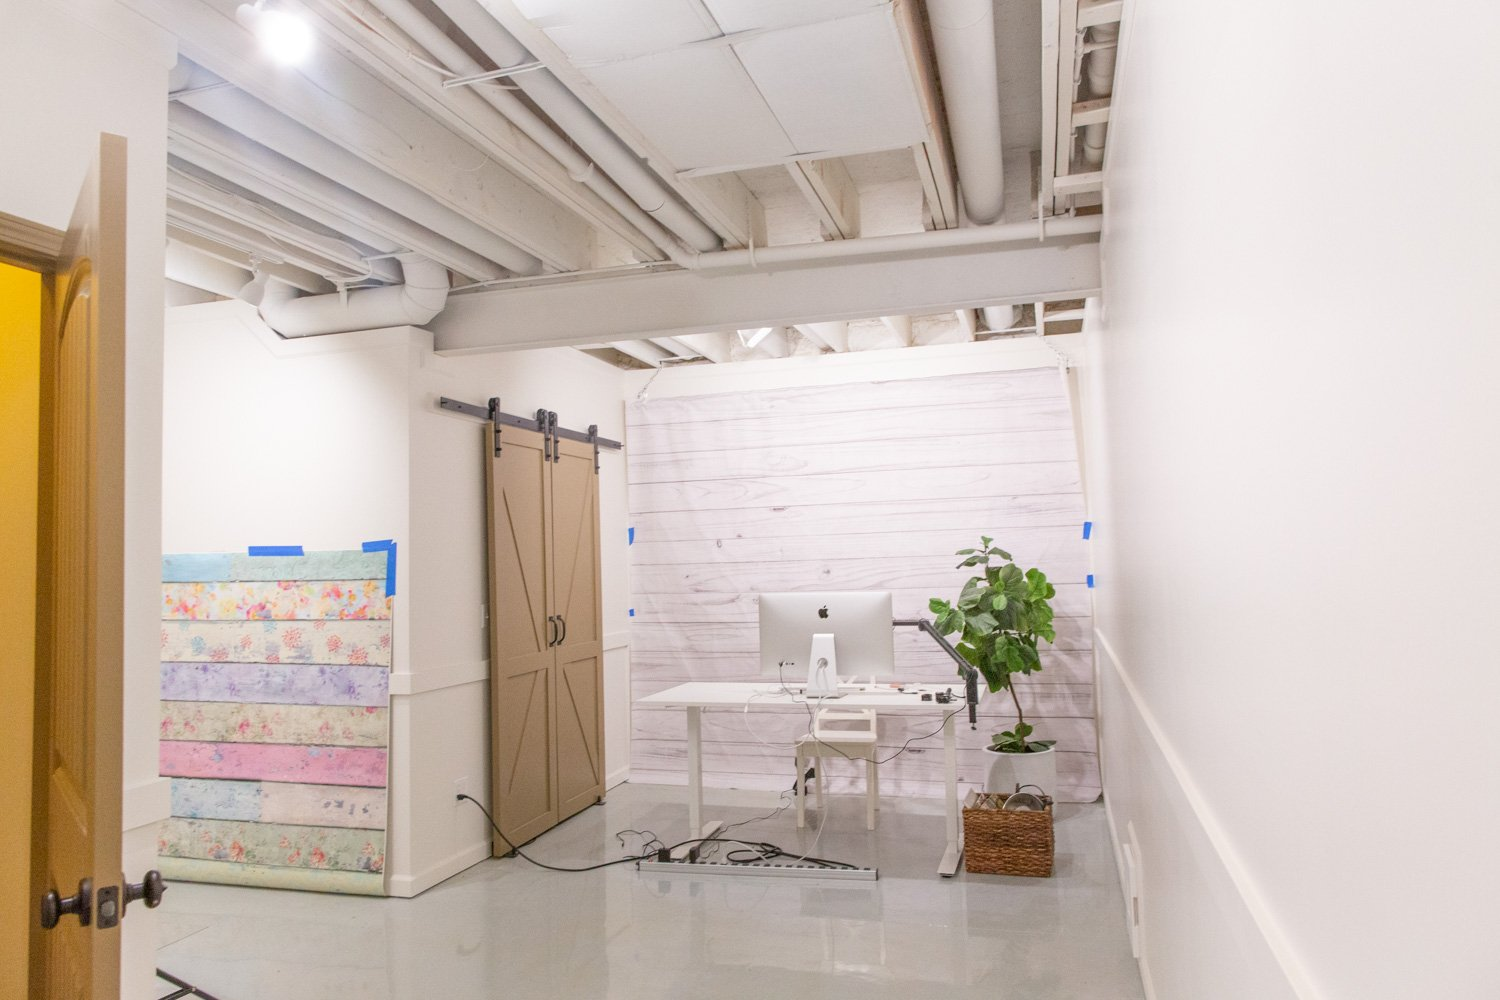 5 Considerations For An Exposed A Basement Ceiling With Pictures